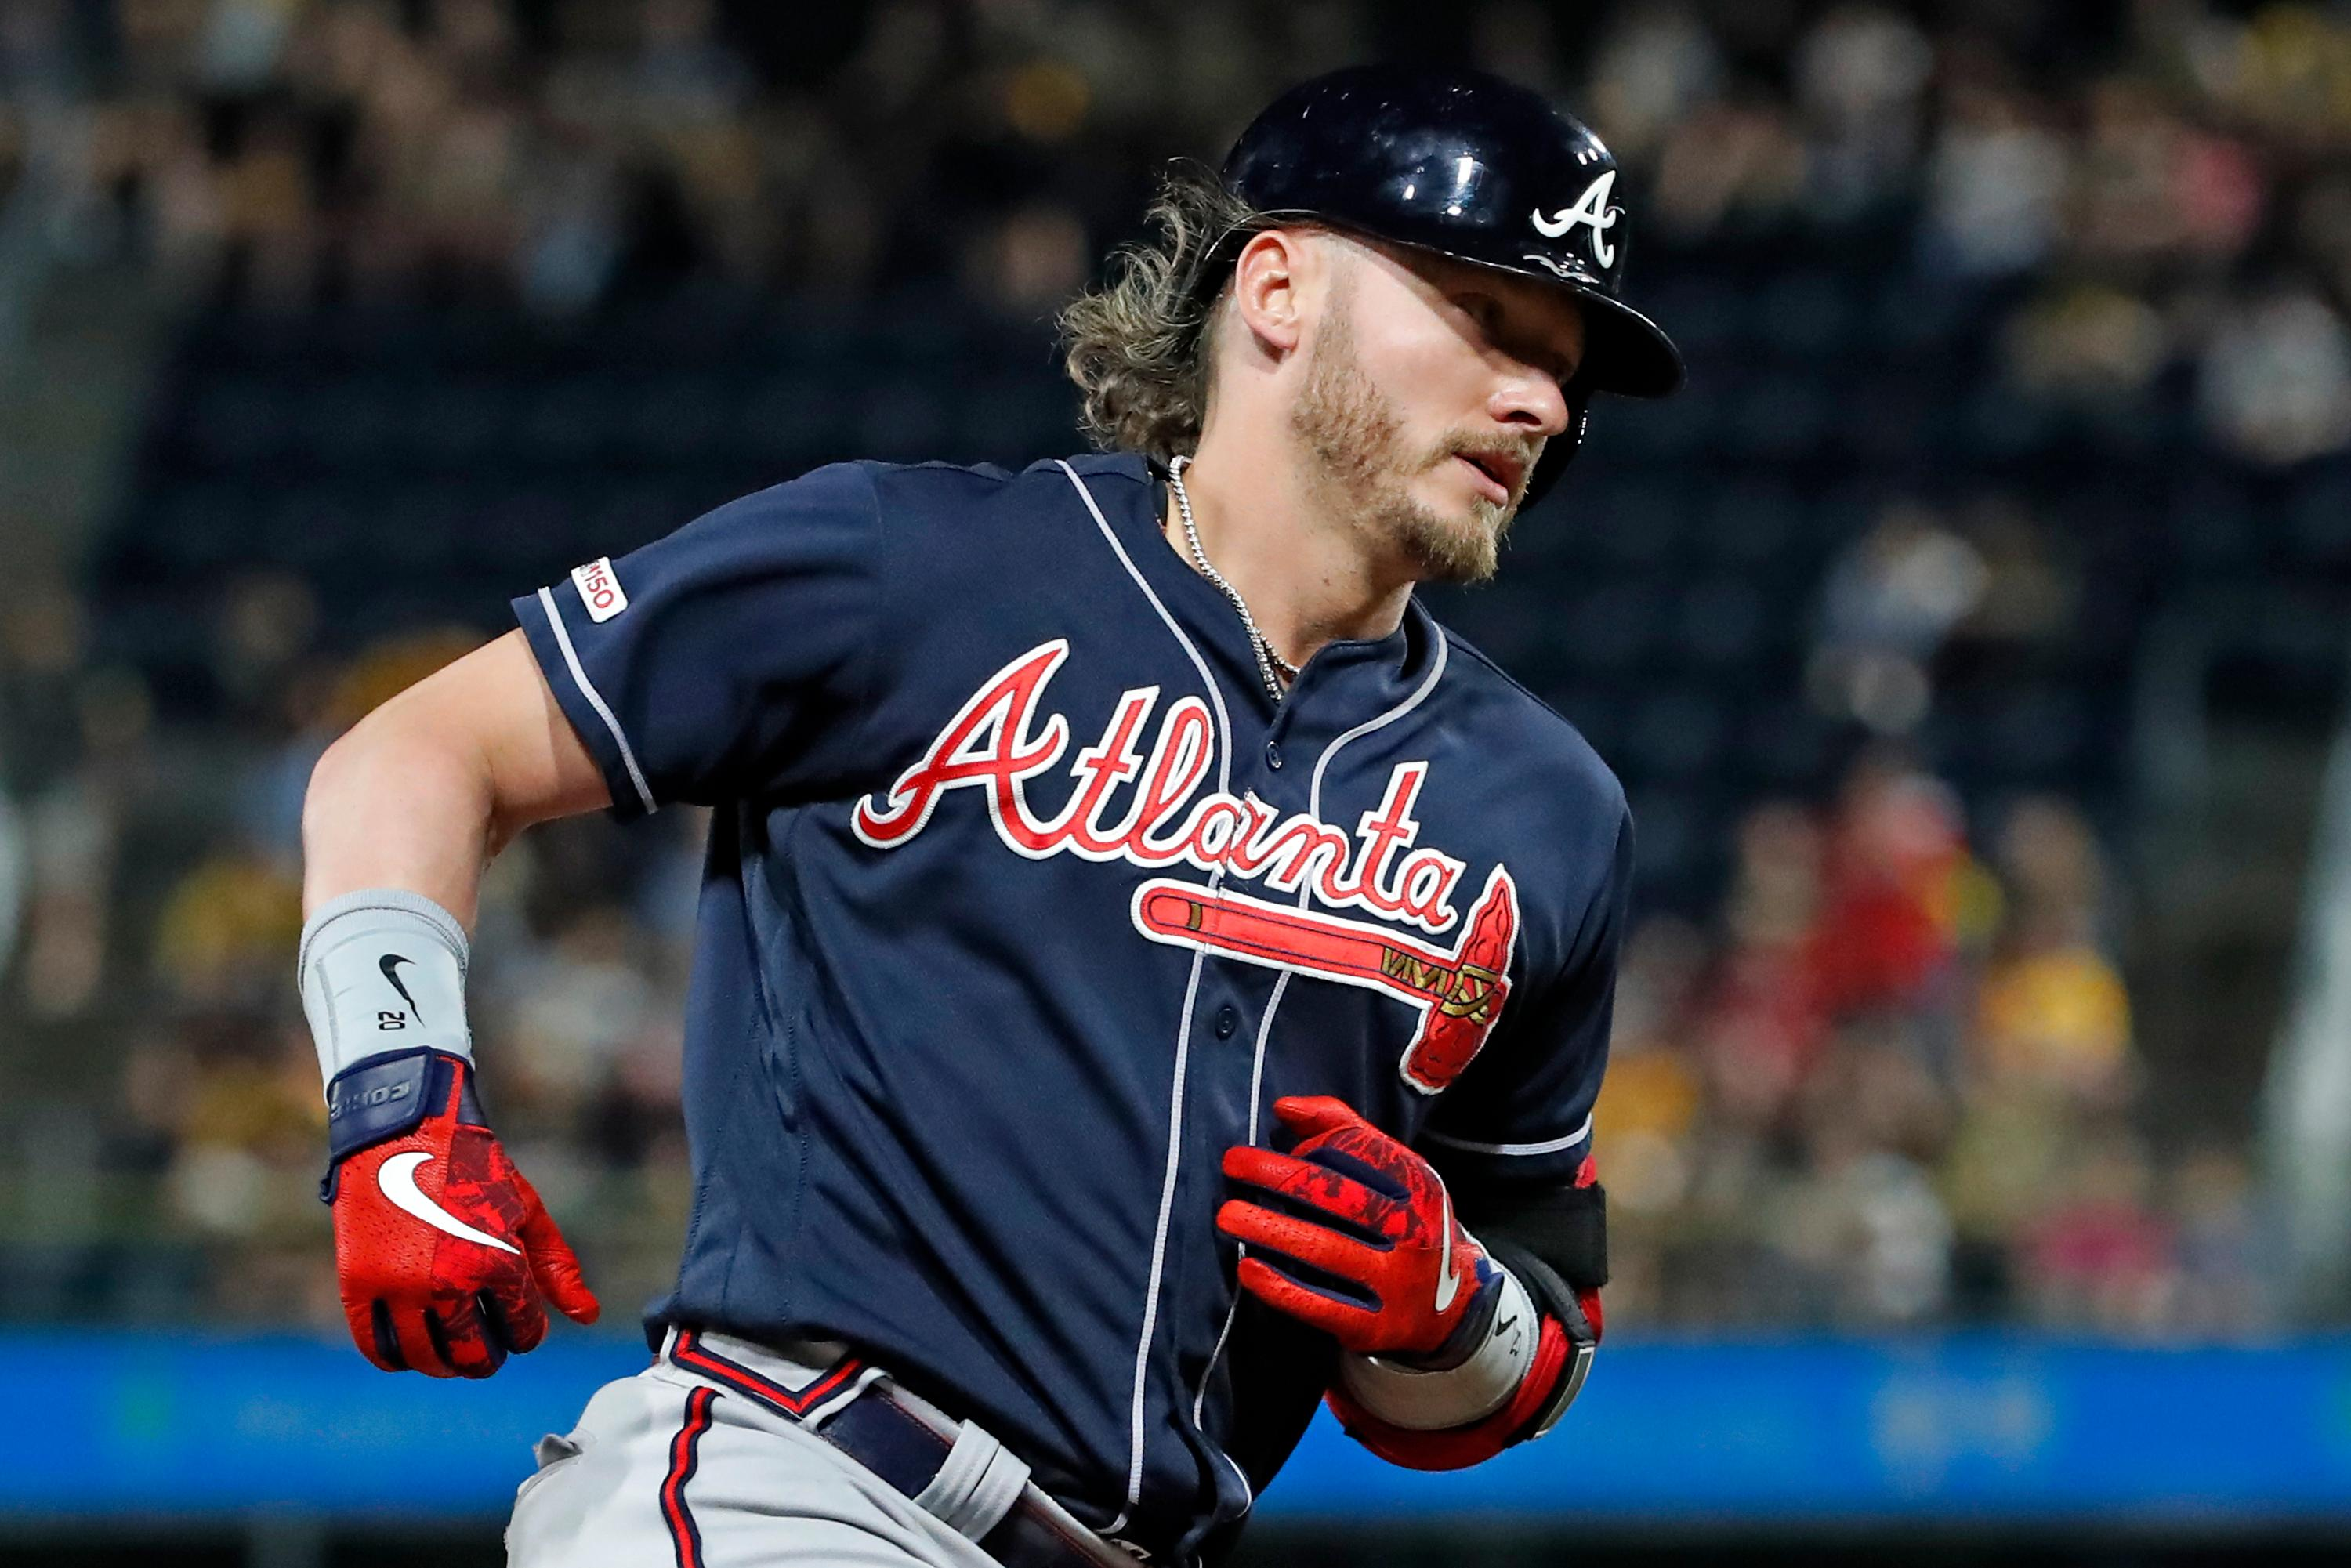 Atlanta Braves' Josh Donaldson rounds third after hitting a three-run home run off Pittsburgh Pirates relief pitcher Geoff Hartlieb during the eighth inning of a baseball game in Pittsburgh, Tuesday, June 4, 2019. (AP Photo/Gene J. Puskar)